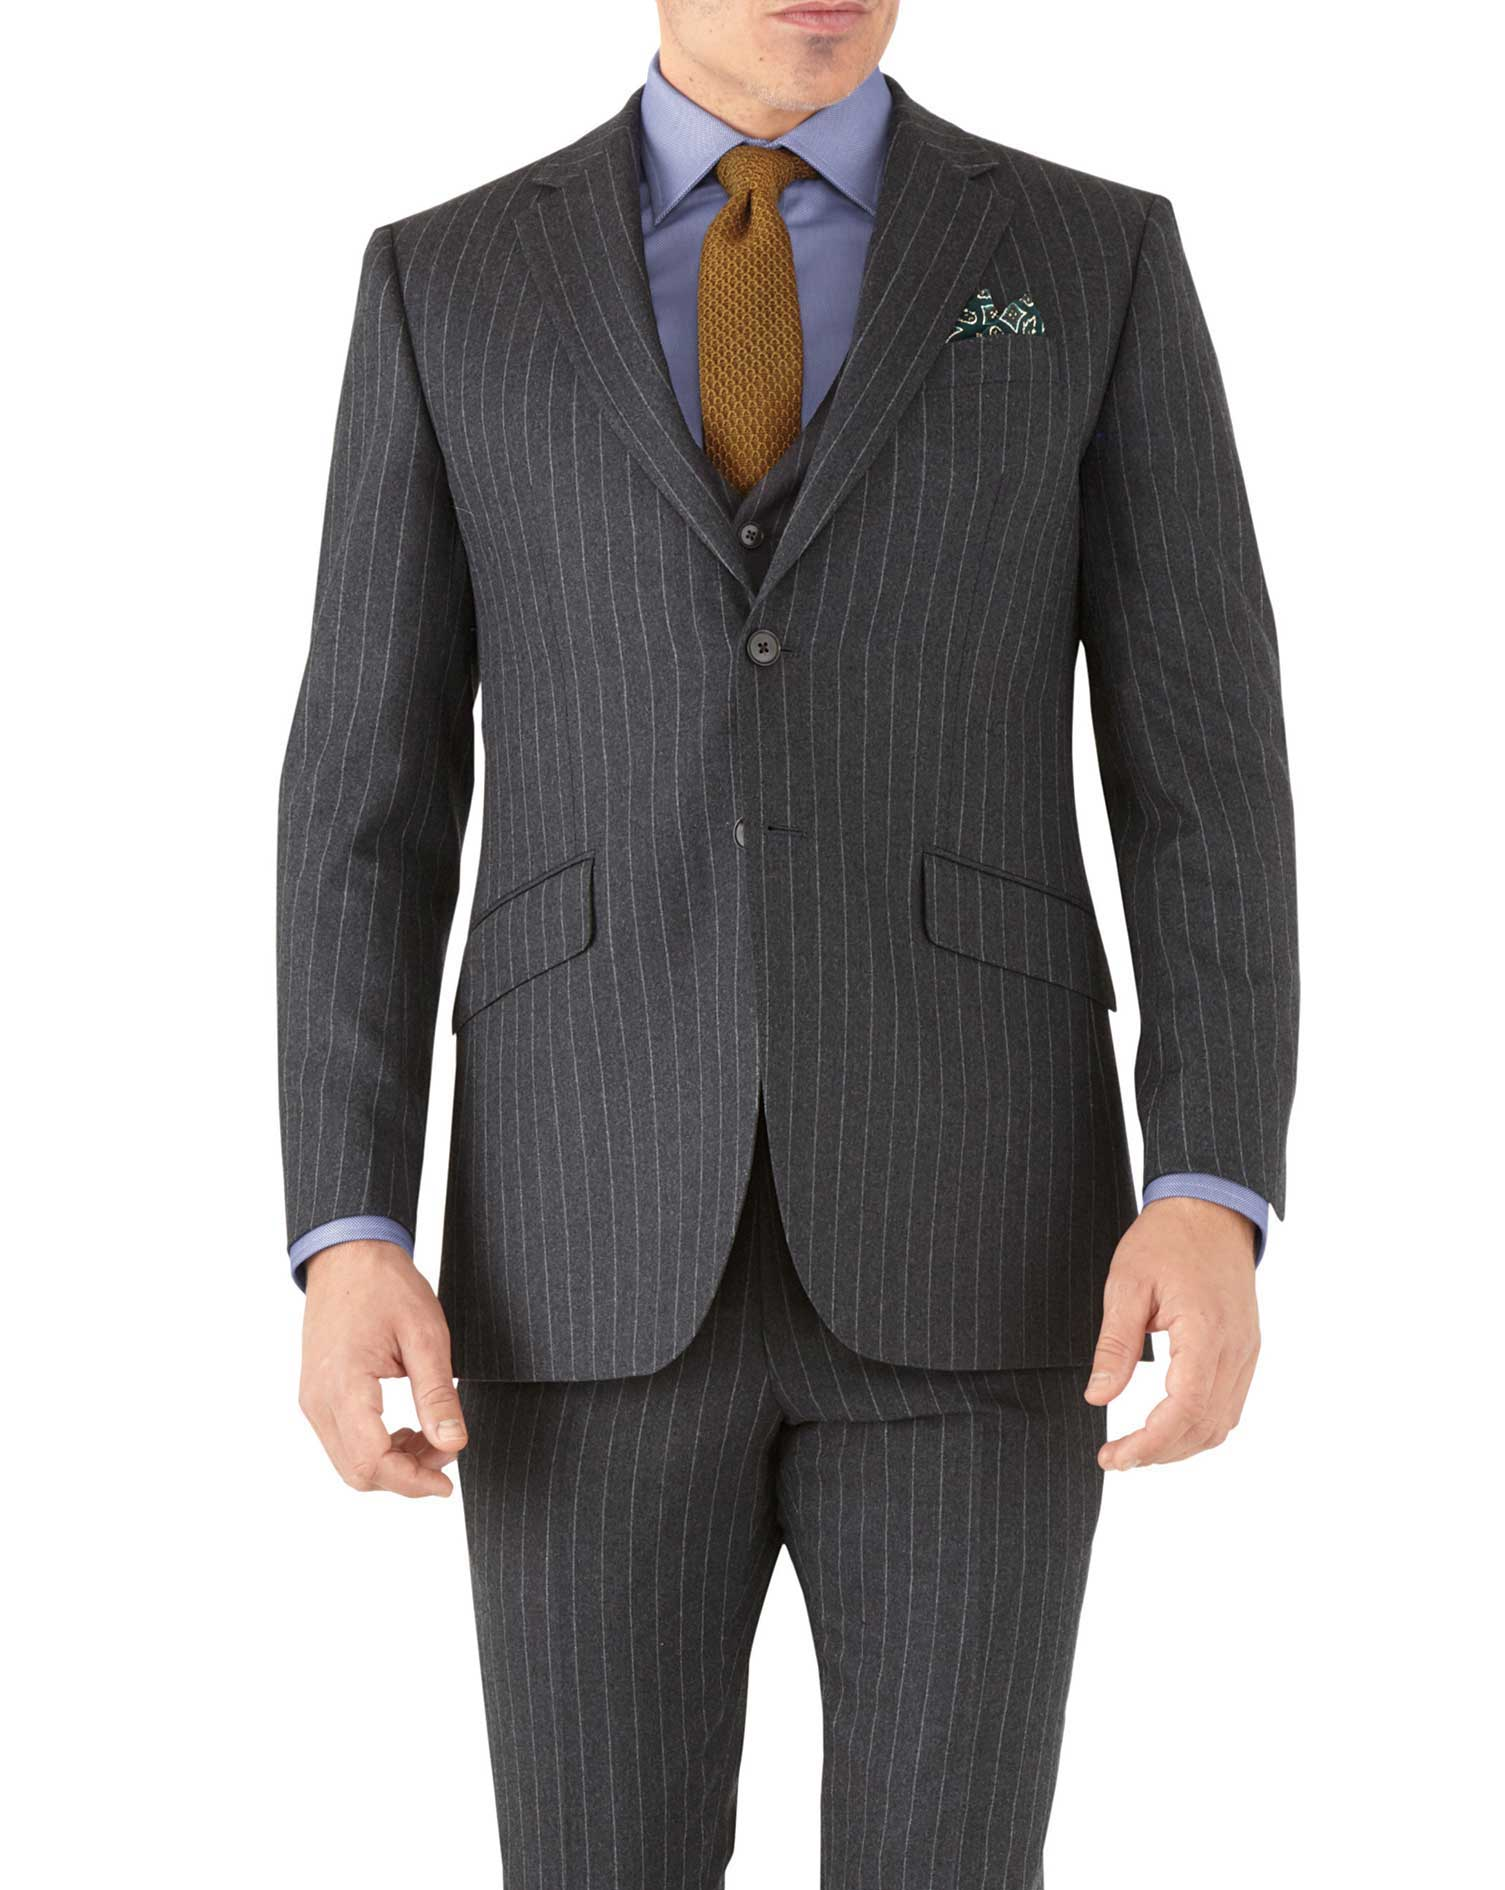 Charcoal Stripe Slim Fit Flannel Business Suit Wool Jacket Size 40 Long by Charles Tyrwhitt